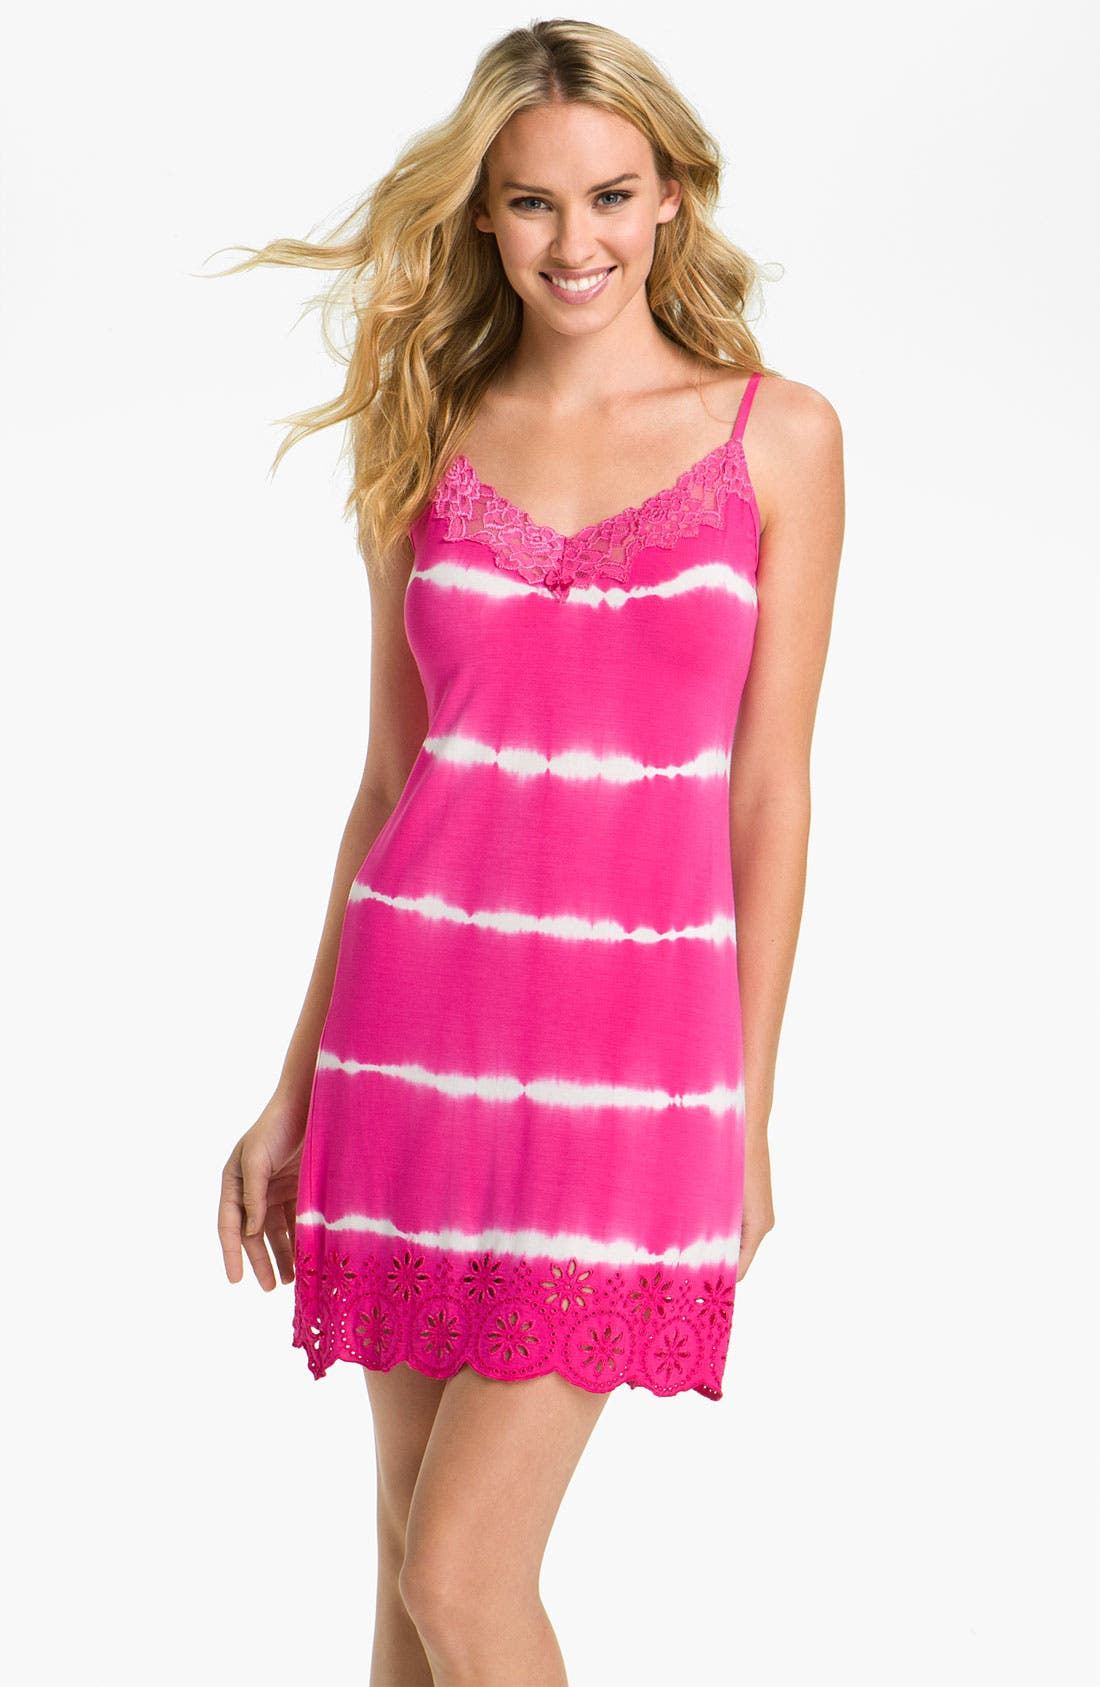 Alternate Image 1 Selected - PJ Salvage 'Dye Cut Cutie' Nightie